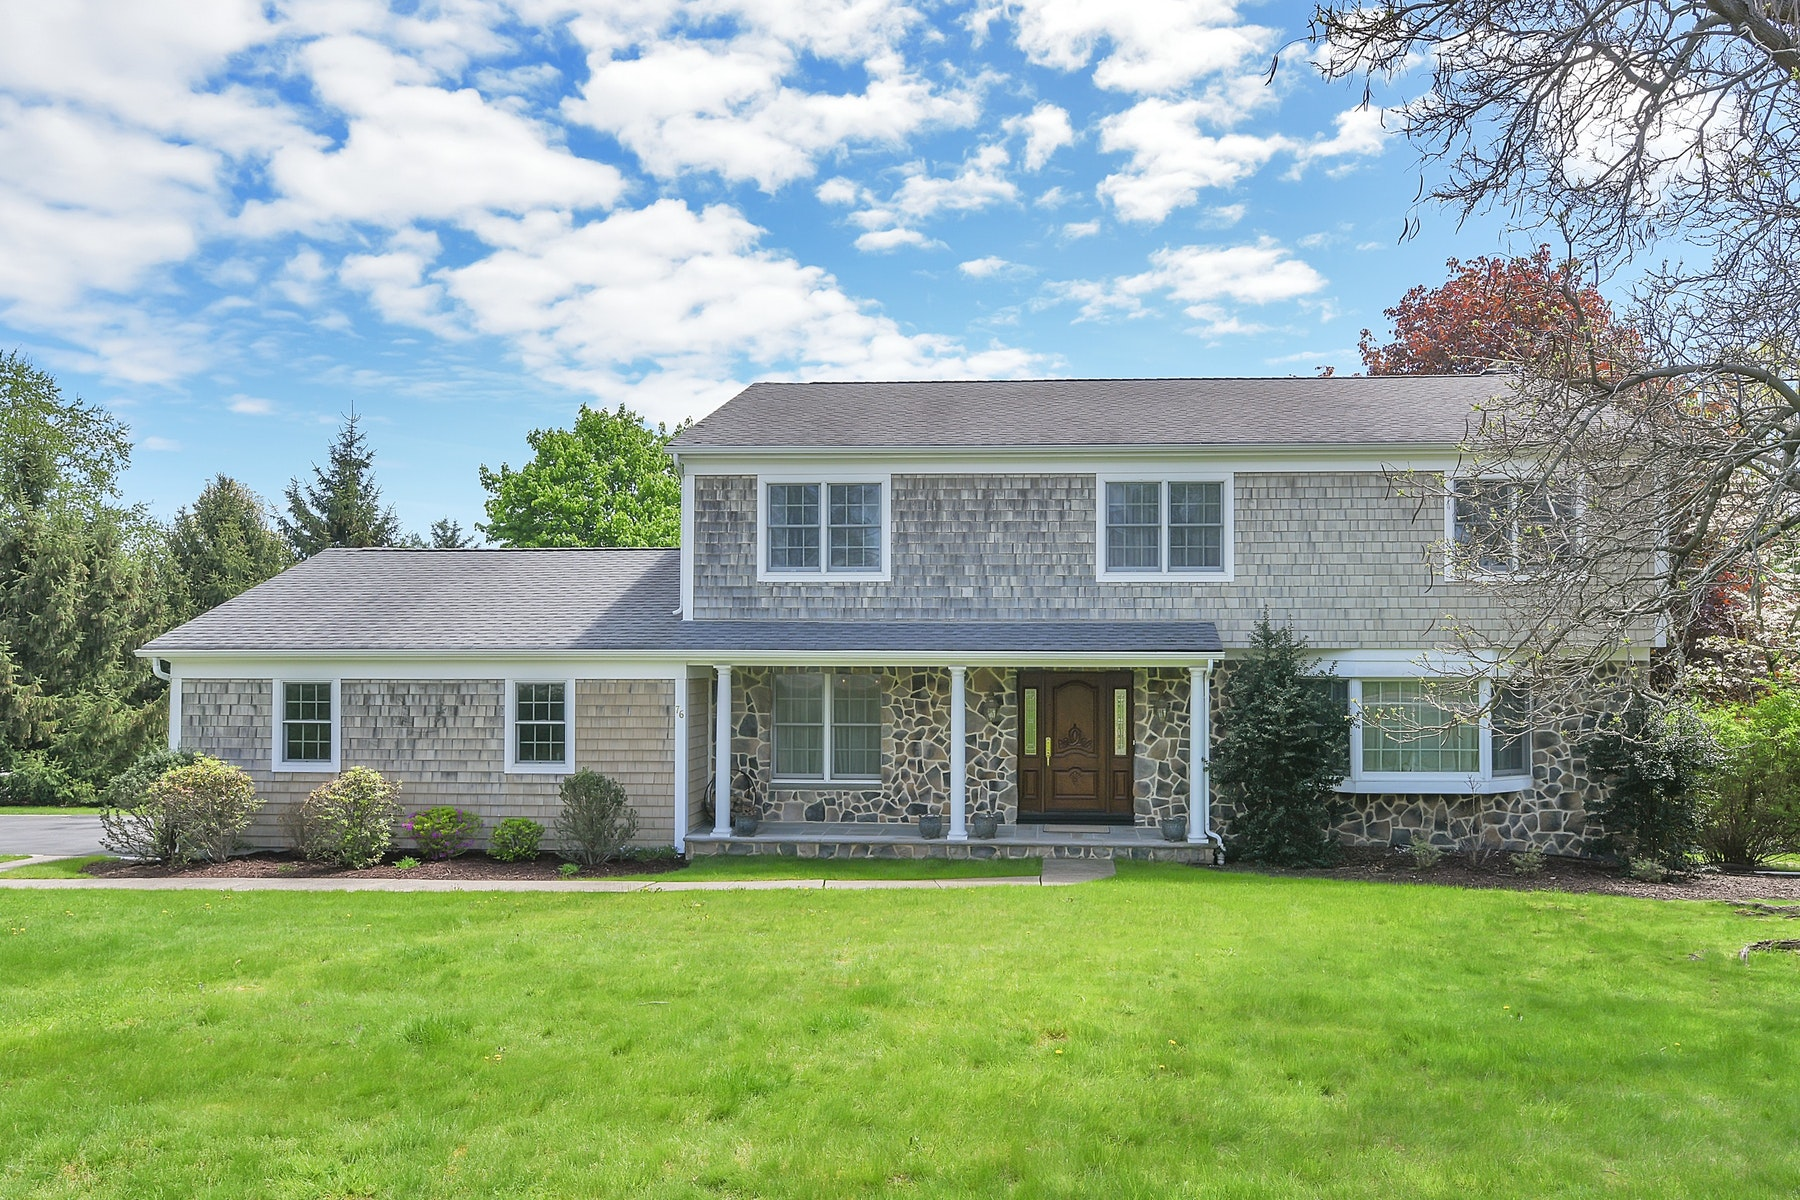 Single Family Homes for Sale at Picture Perfect Center Hall Colonial! 76 Carlough Road Upper Saddle River, New Jersey 07458 United States